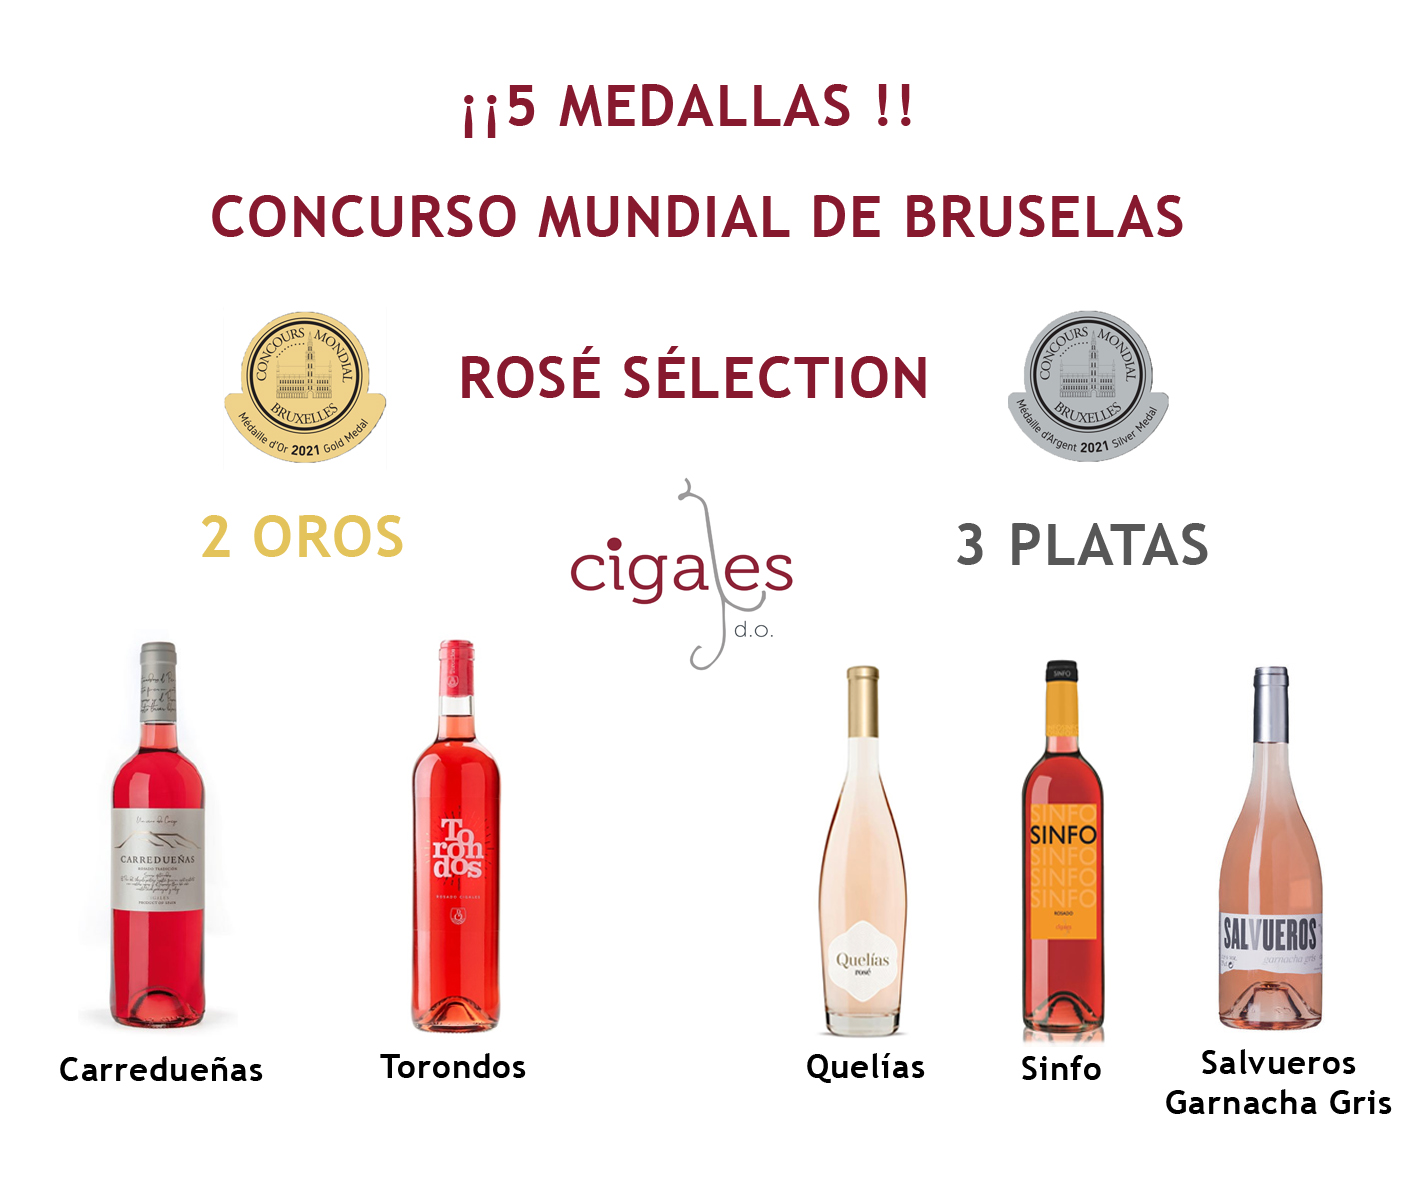 La DO Cigales consigue 5 medallas en el Concurso Mundial de Bruselas Rose Selection